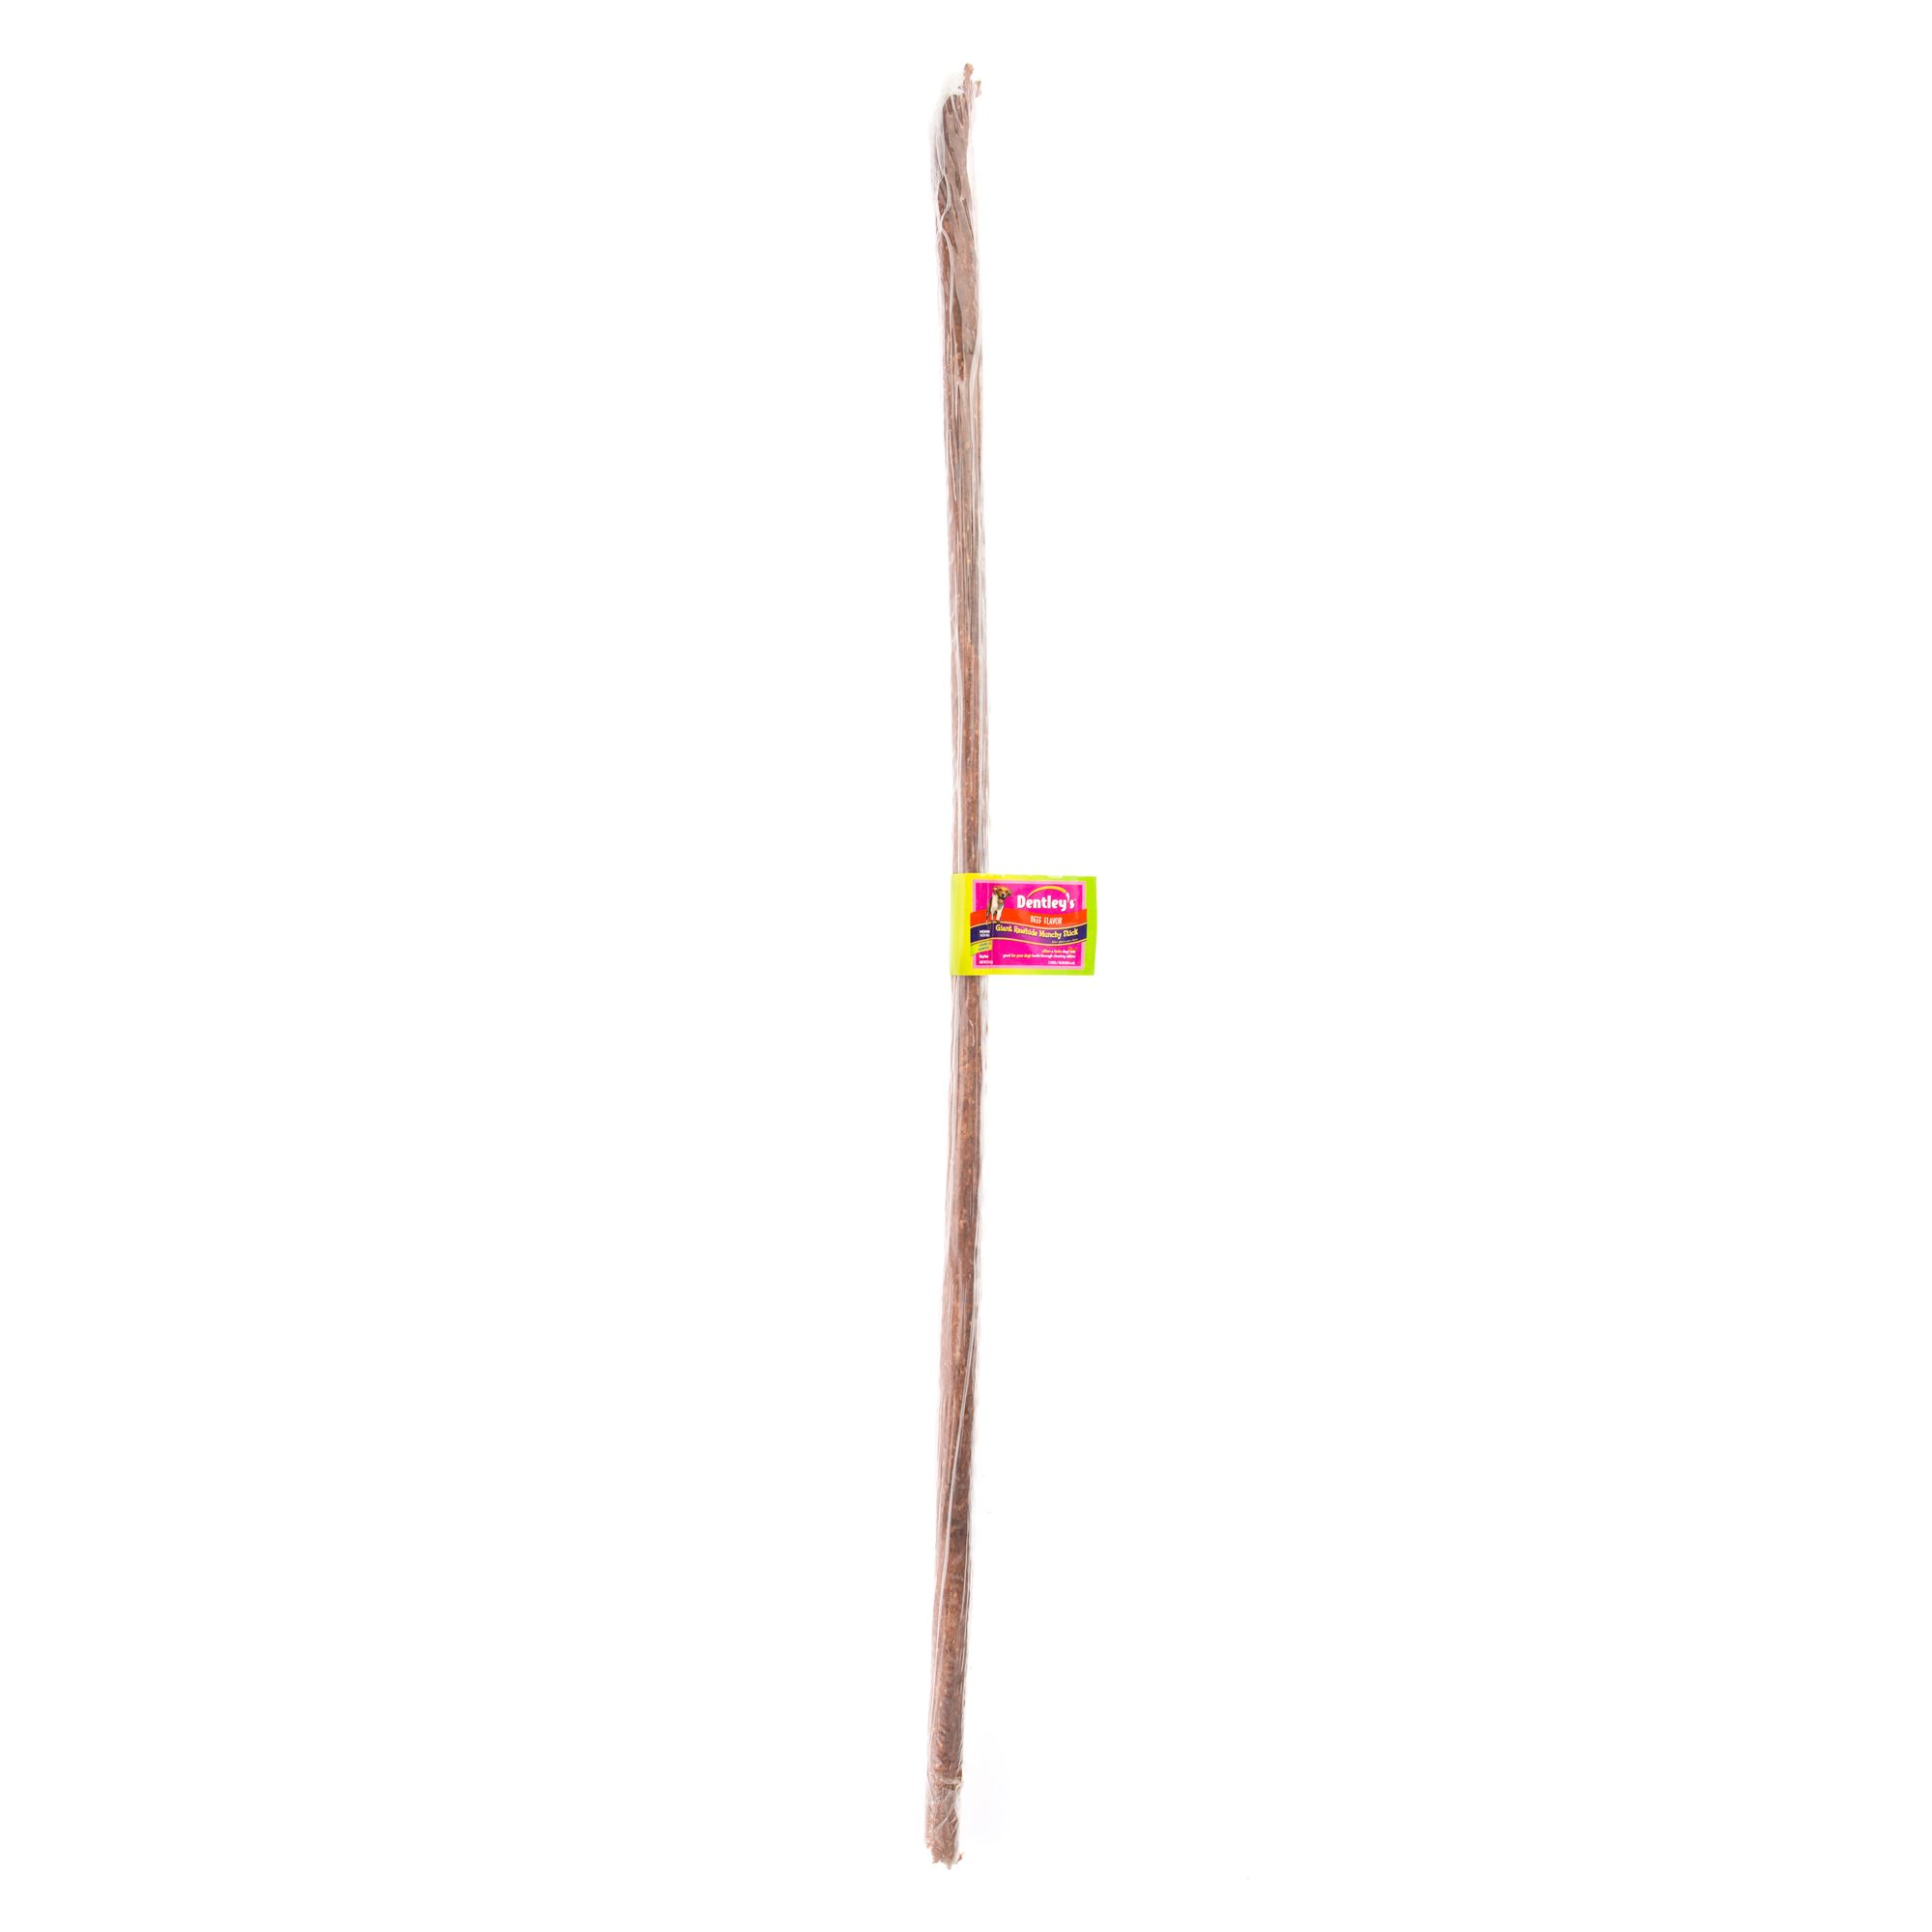 Dentleys Giant Rawhide Munchy Stick Dog Treat Beef Size 36 In